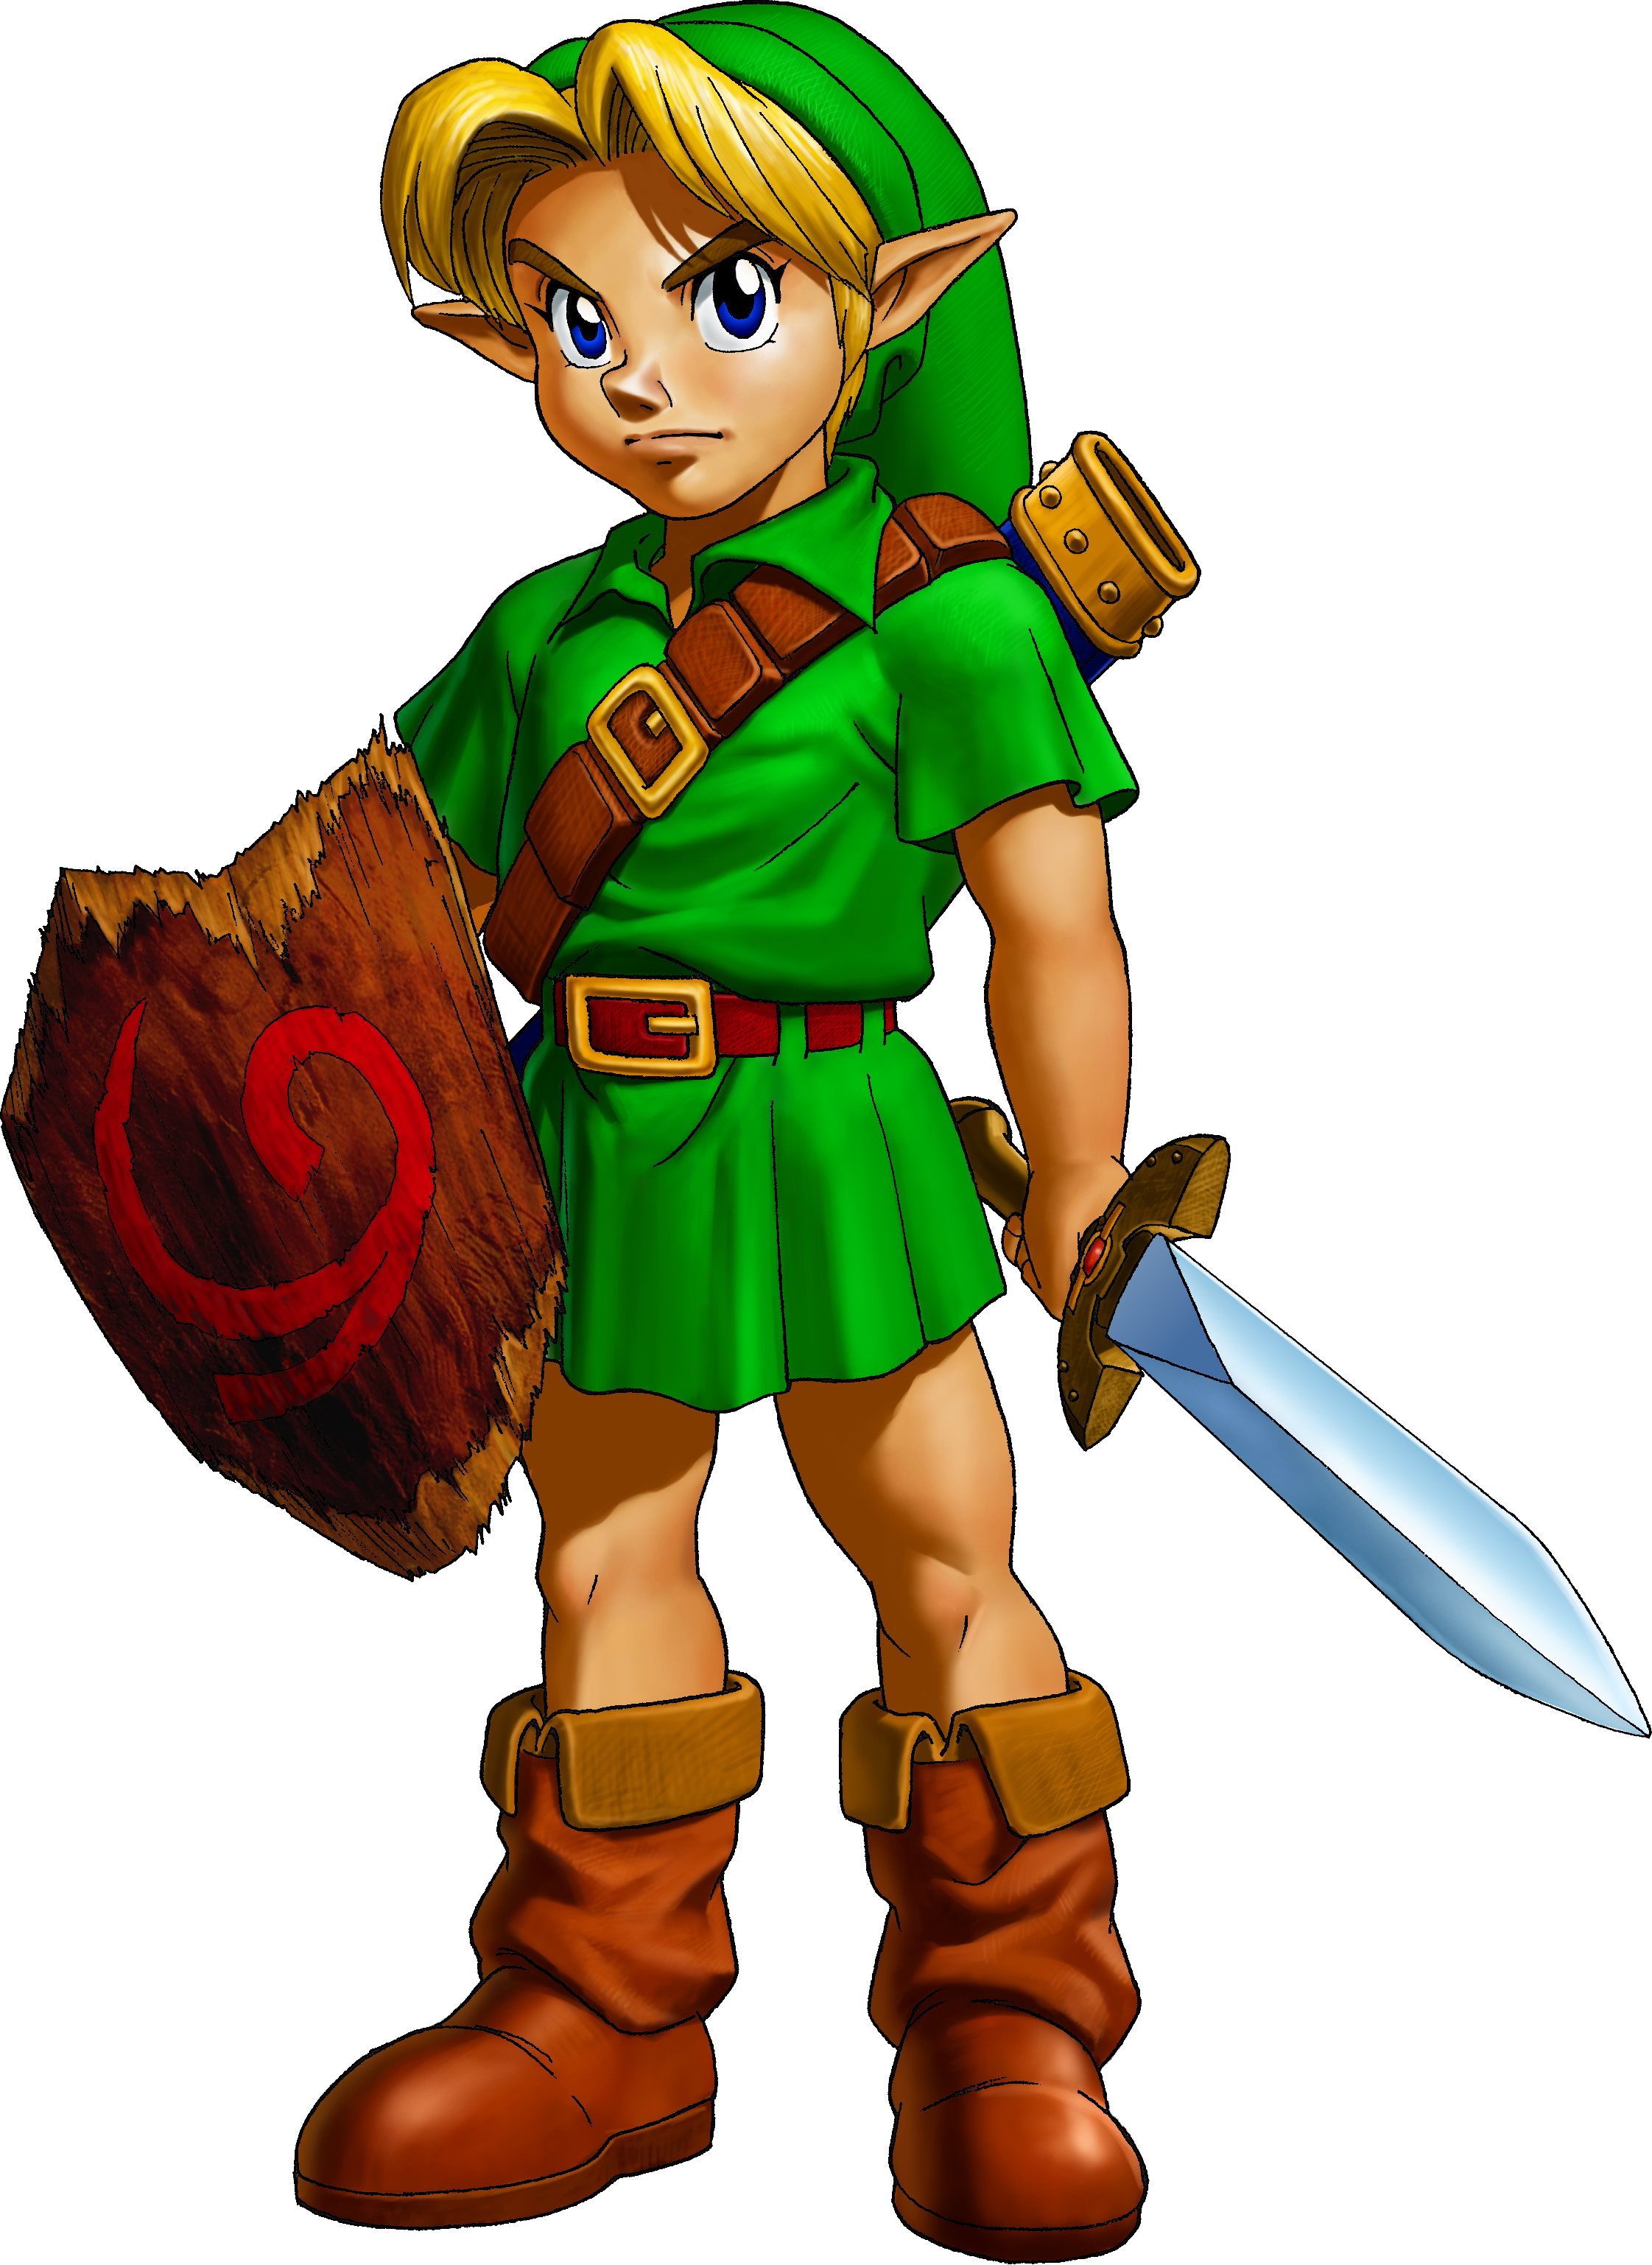 Artwork of Link as a youth